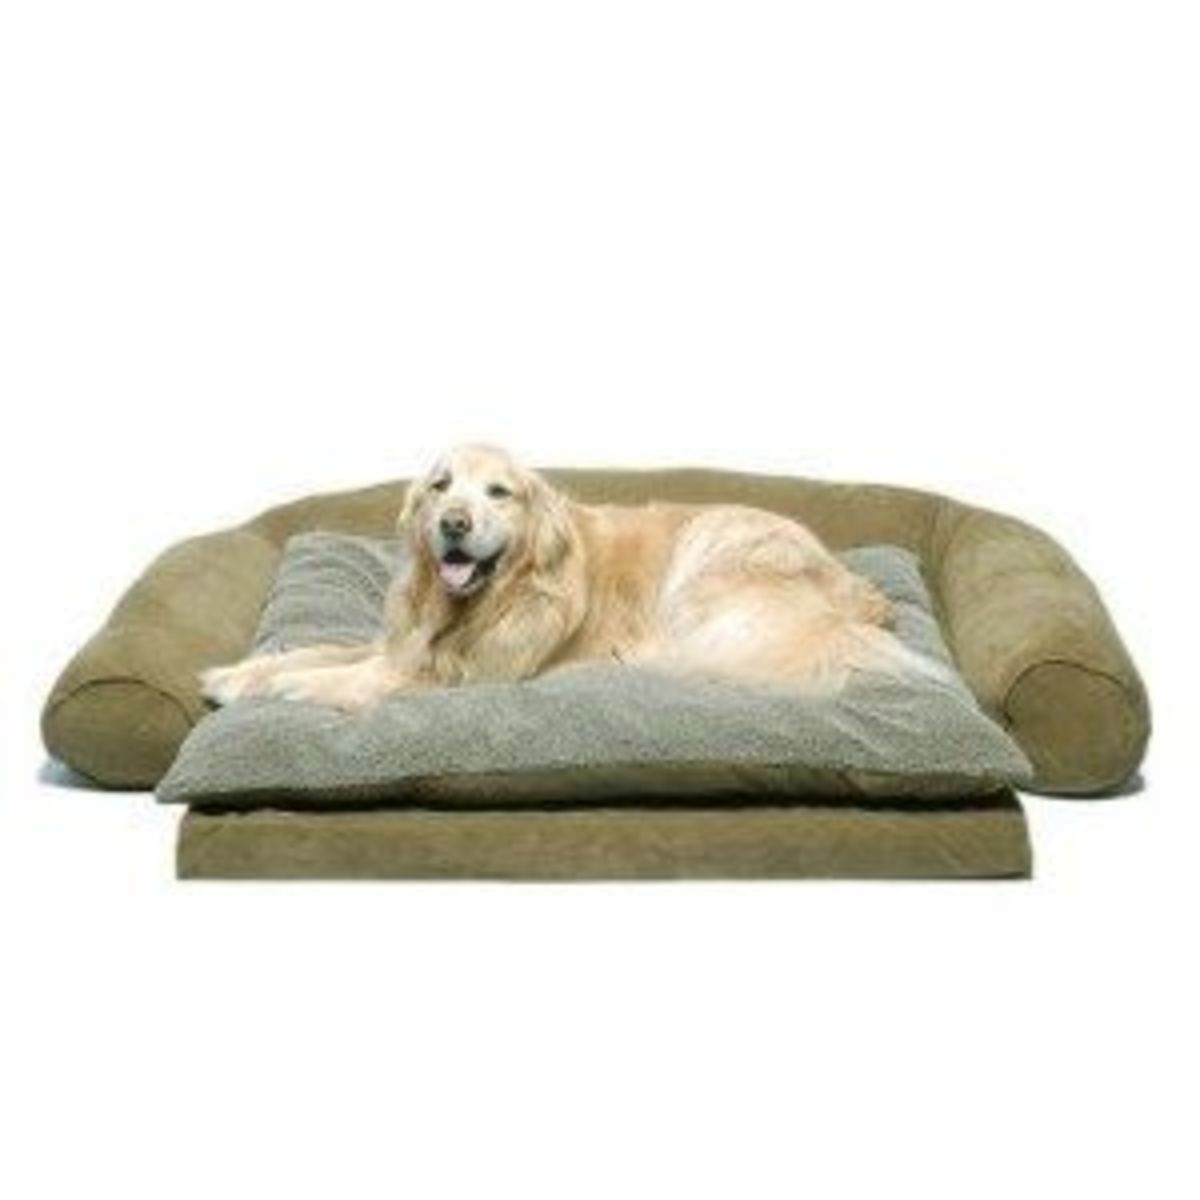 Orthopedic sleeper couch pet bed